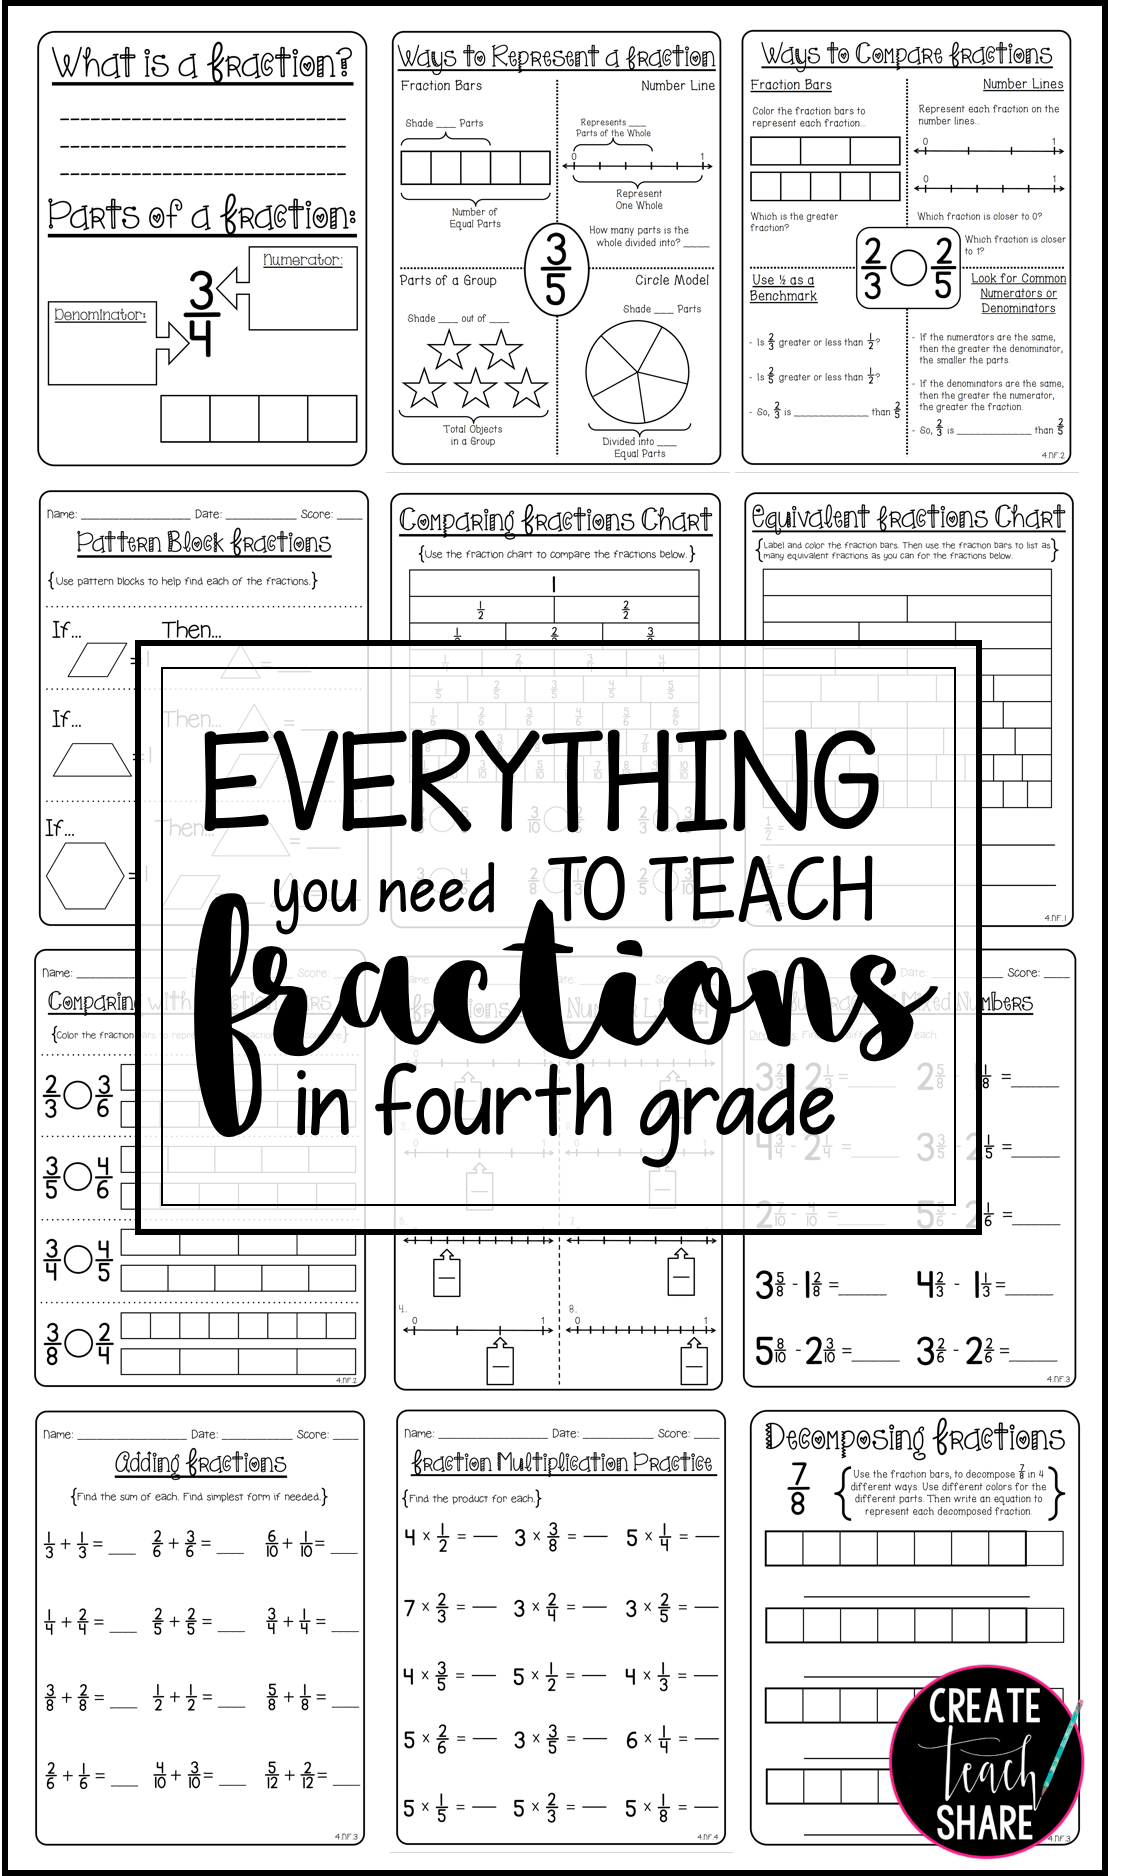 80 Pages To Help Teach Fractions In 4th Grade